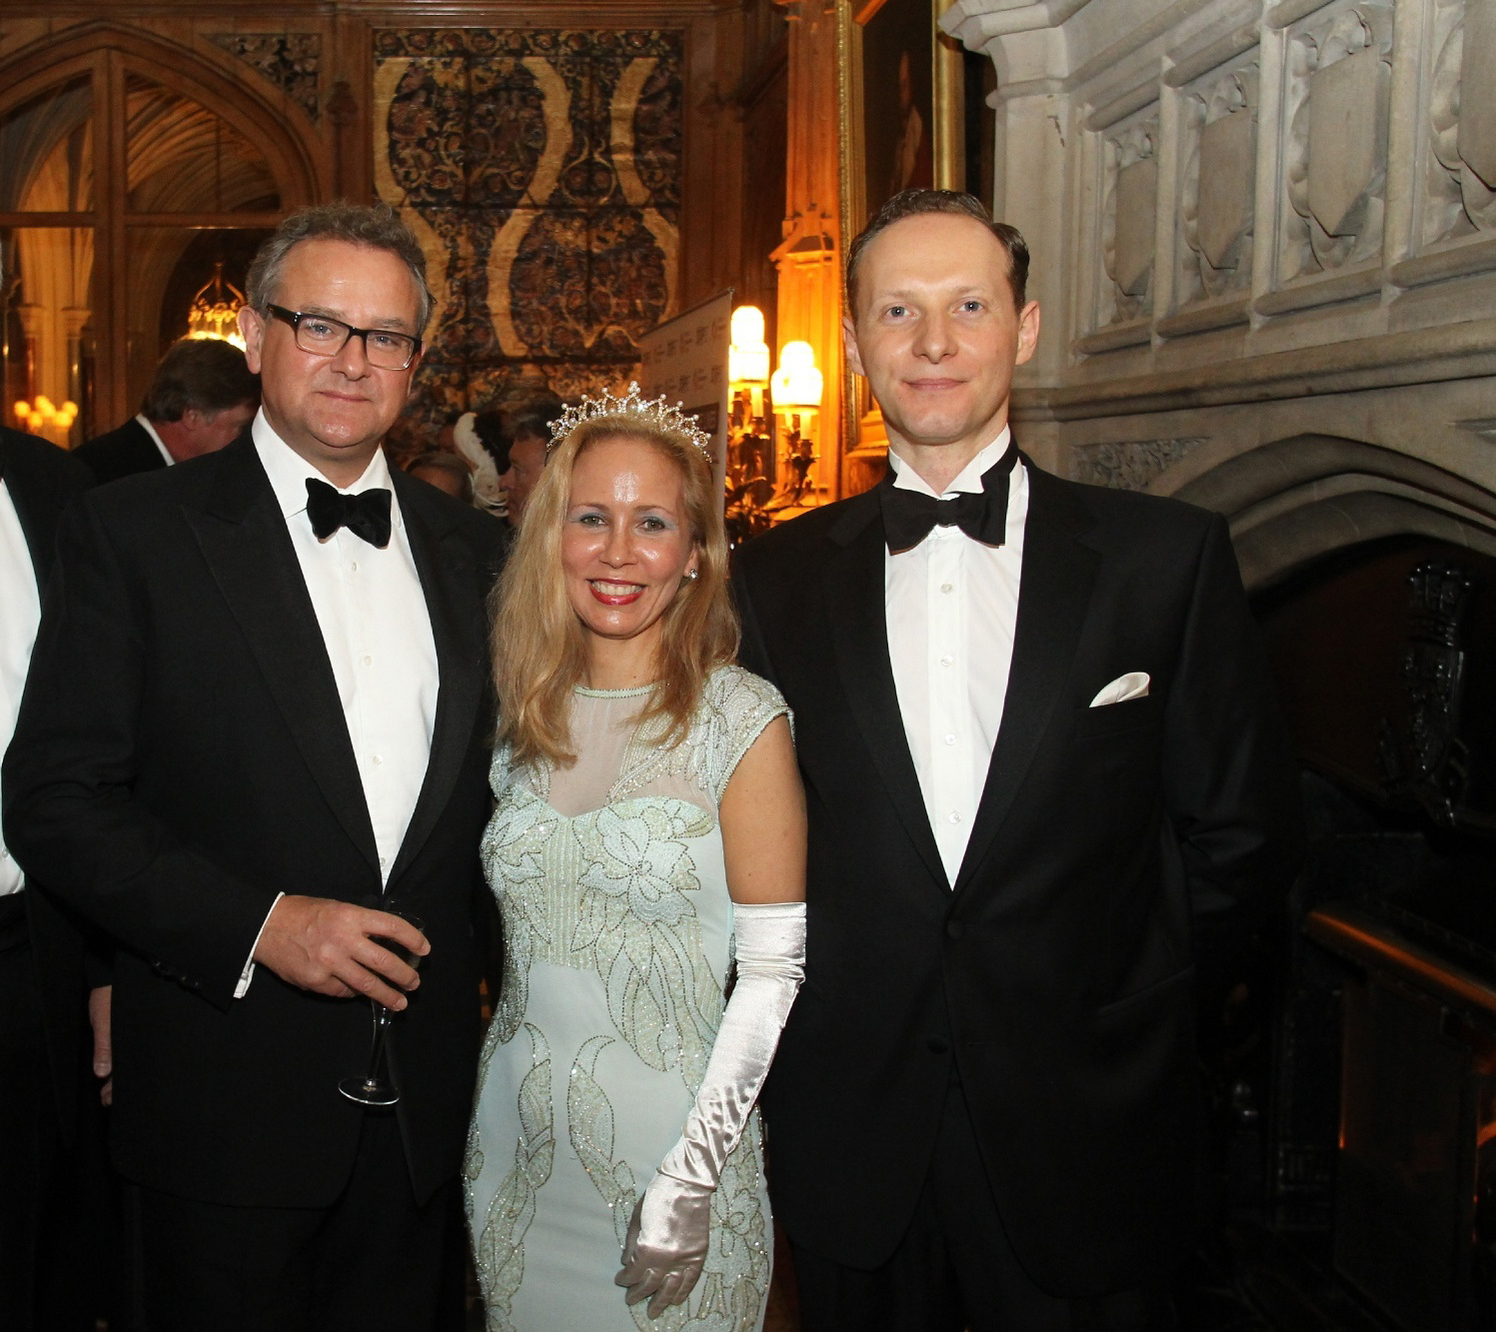 Highclere Castle (Downton Abbey): (L-R) Hugh Bonneville (Lord Grantham), Family Office Review's Steffi Claiden with Morpho Founder Neil Anthony Richmond